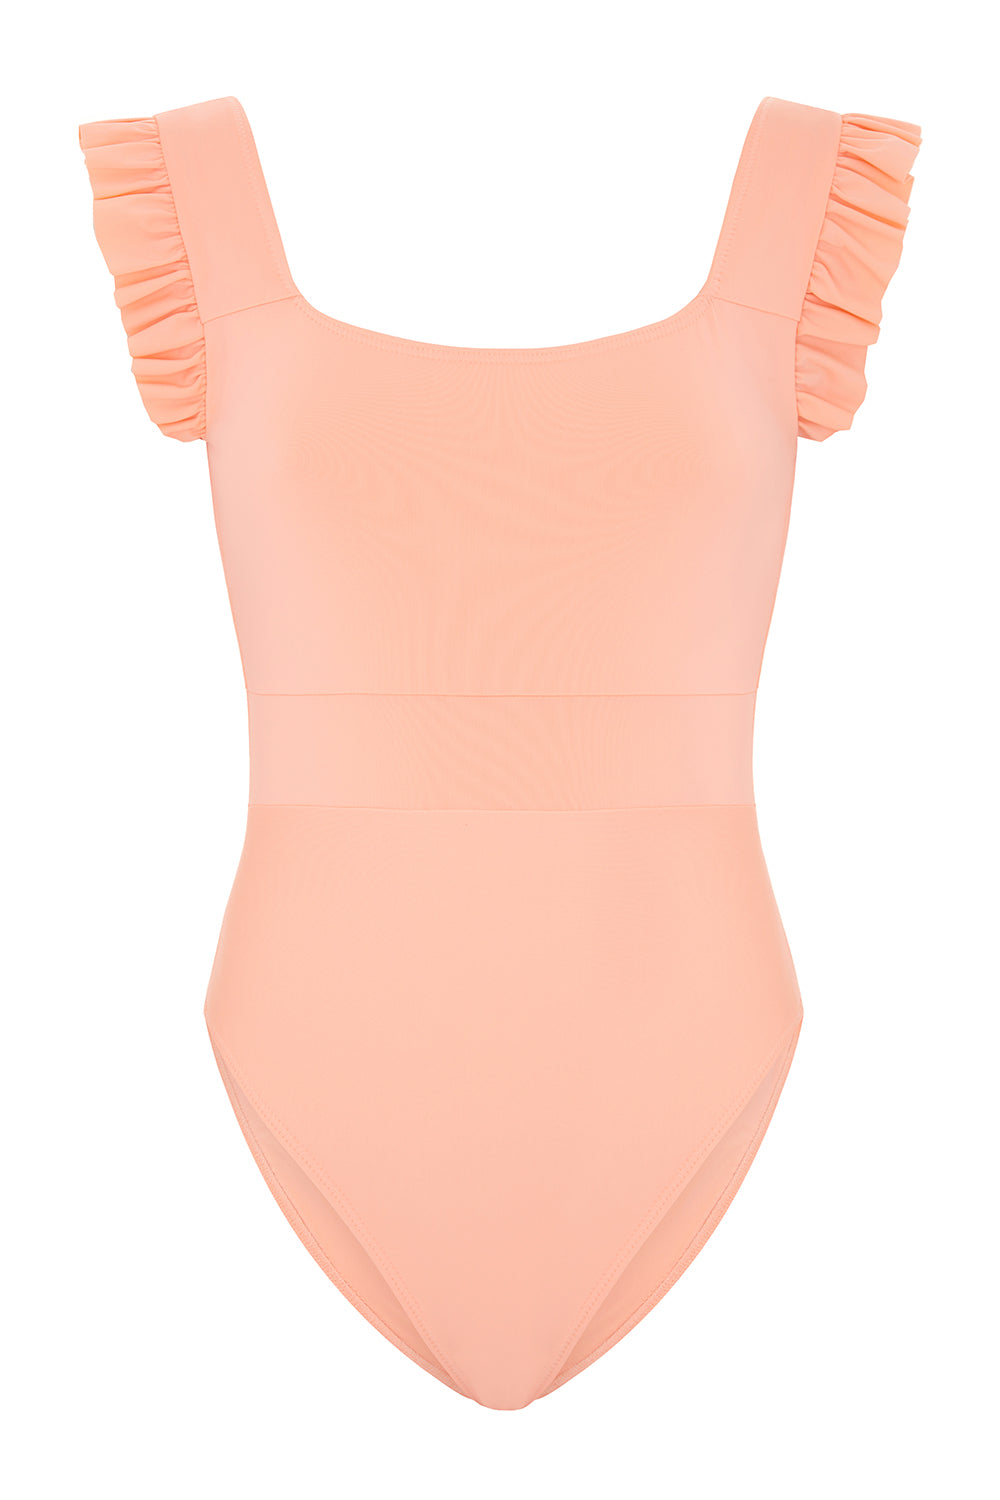 Collyer Swimsuit - Peach